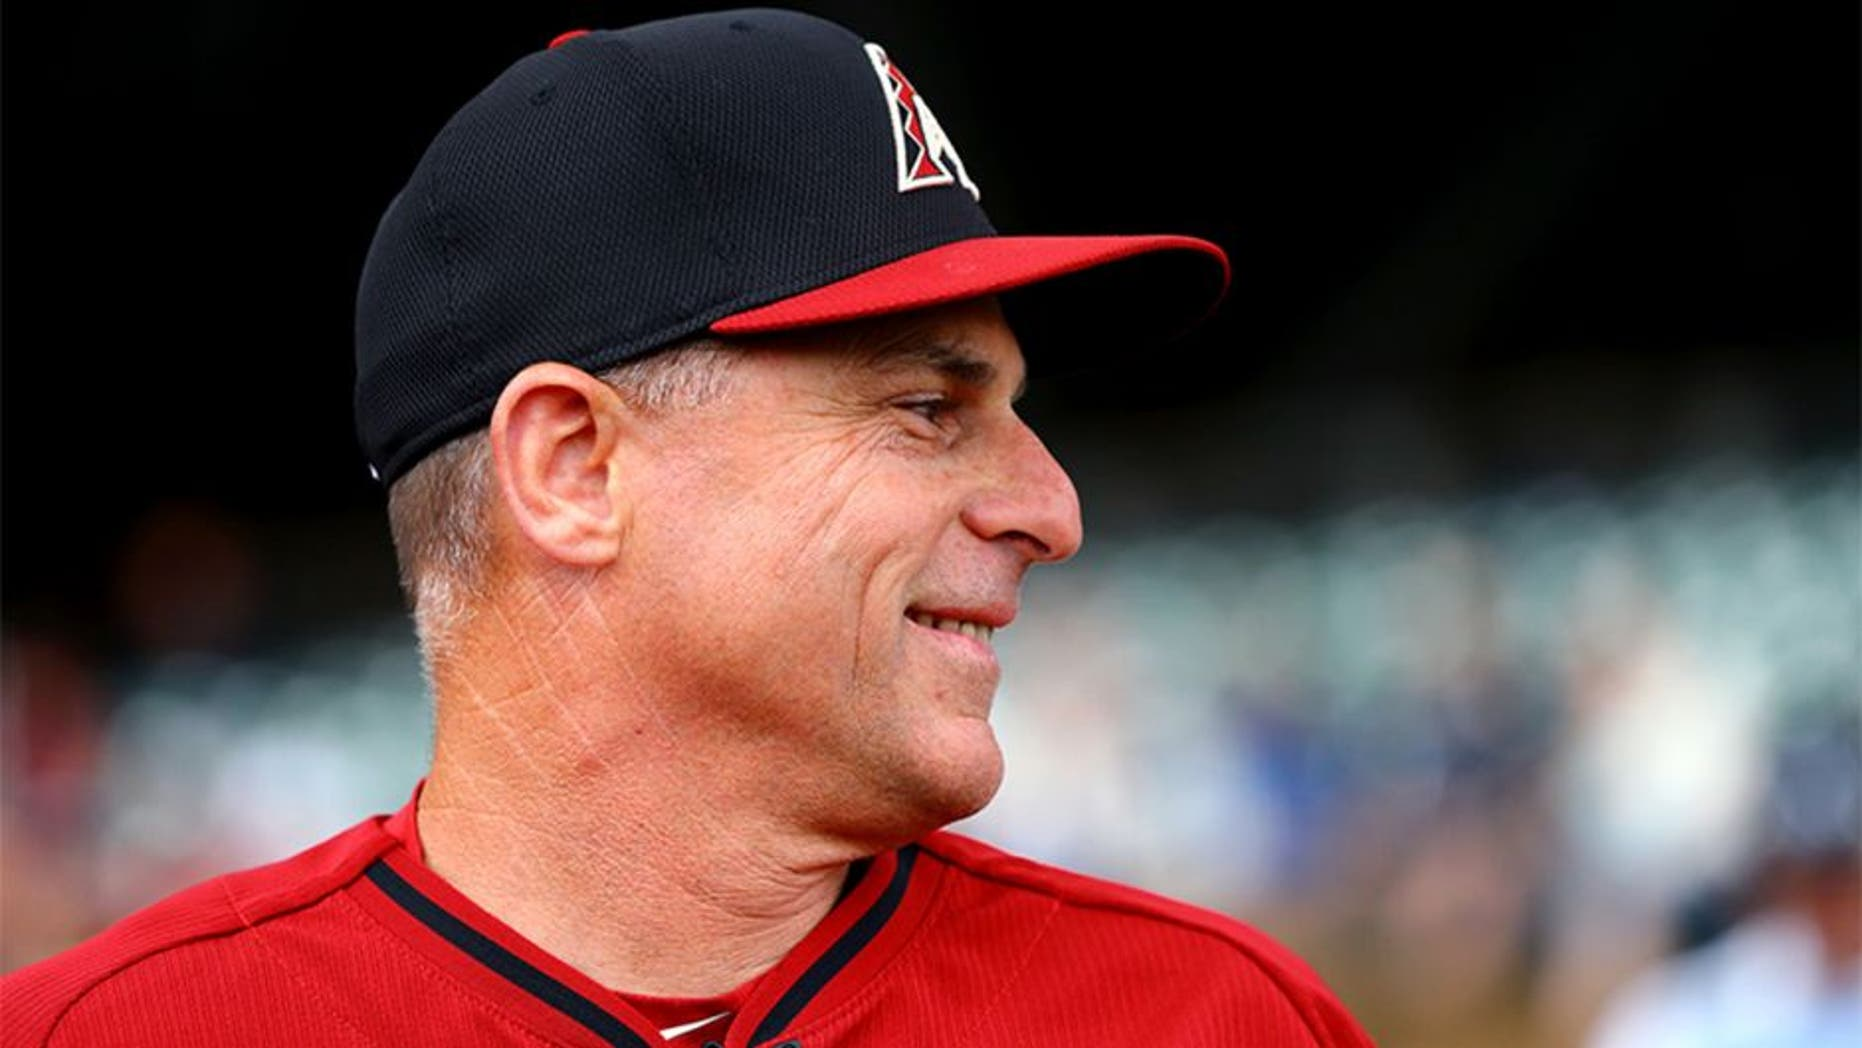 Mar 3, 2015; Scottsdale, AZ, USA; Arizona Diamondbacks manager Chip Hale against the Arizona State Sun Devils during a spring training baseball game at Salt River Fields. Mandatory Credit: Mark J. Rebilas-USA TODAY Sports